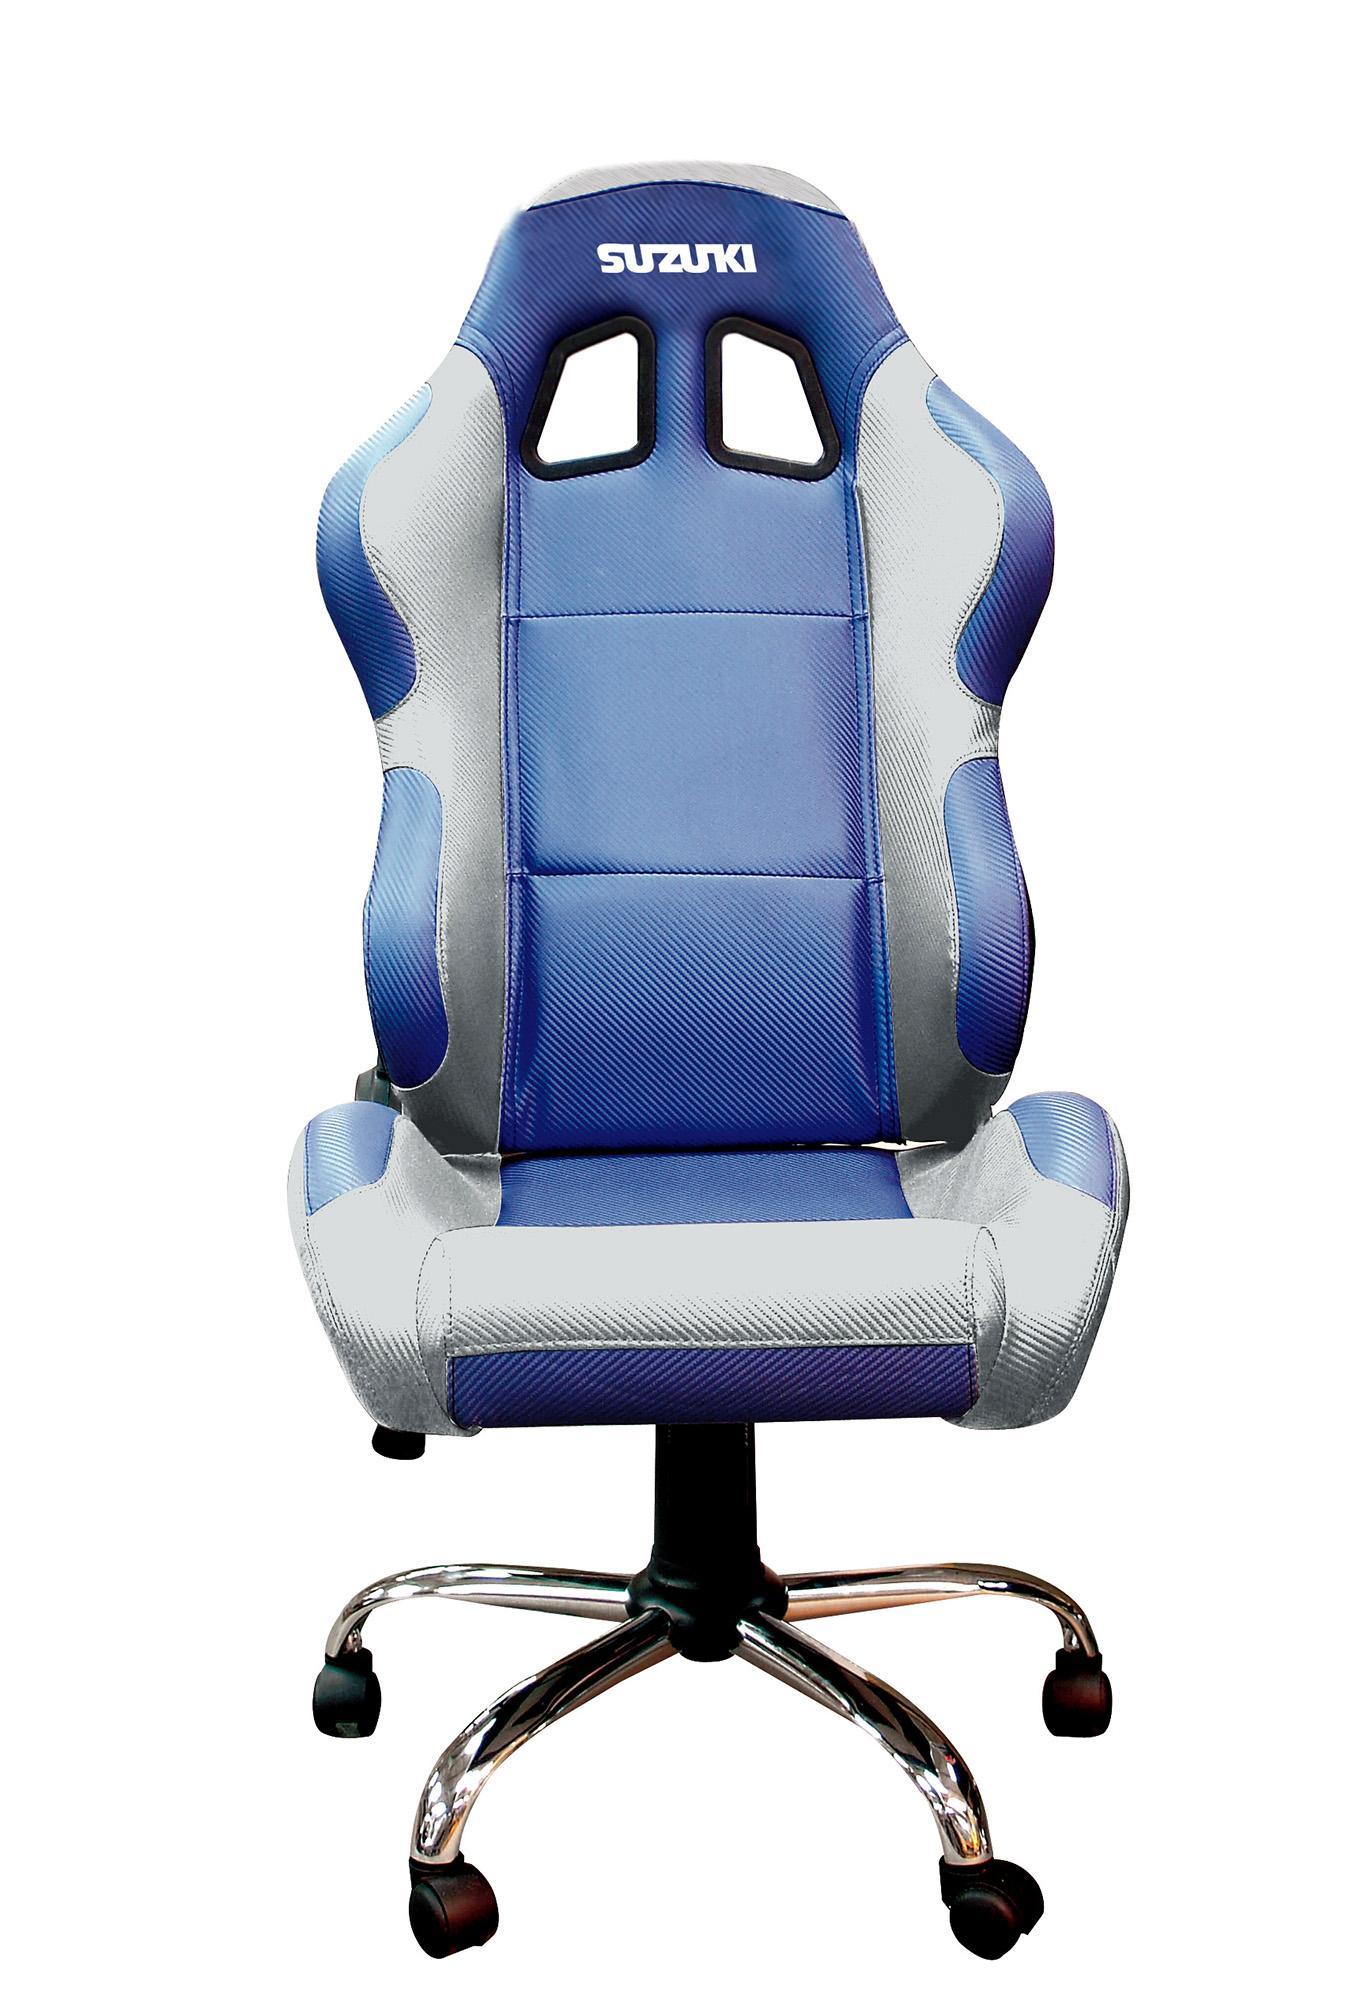 RIDER PADDOCK TEAM CHAIR - SUZUKI BLUE WITH SILVER TRIM